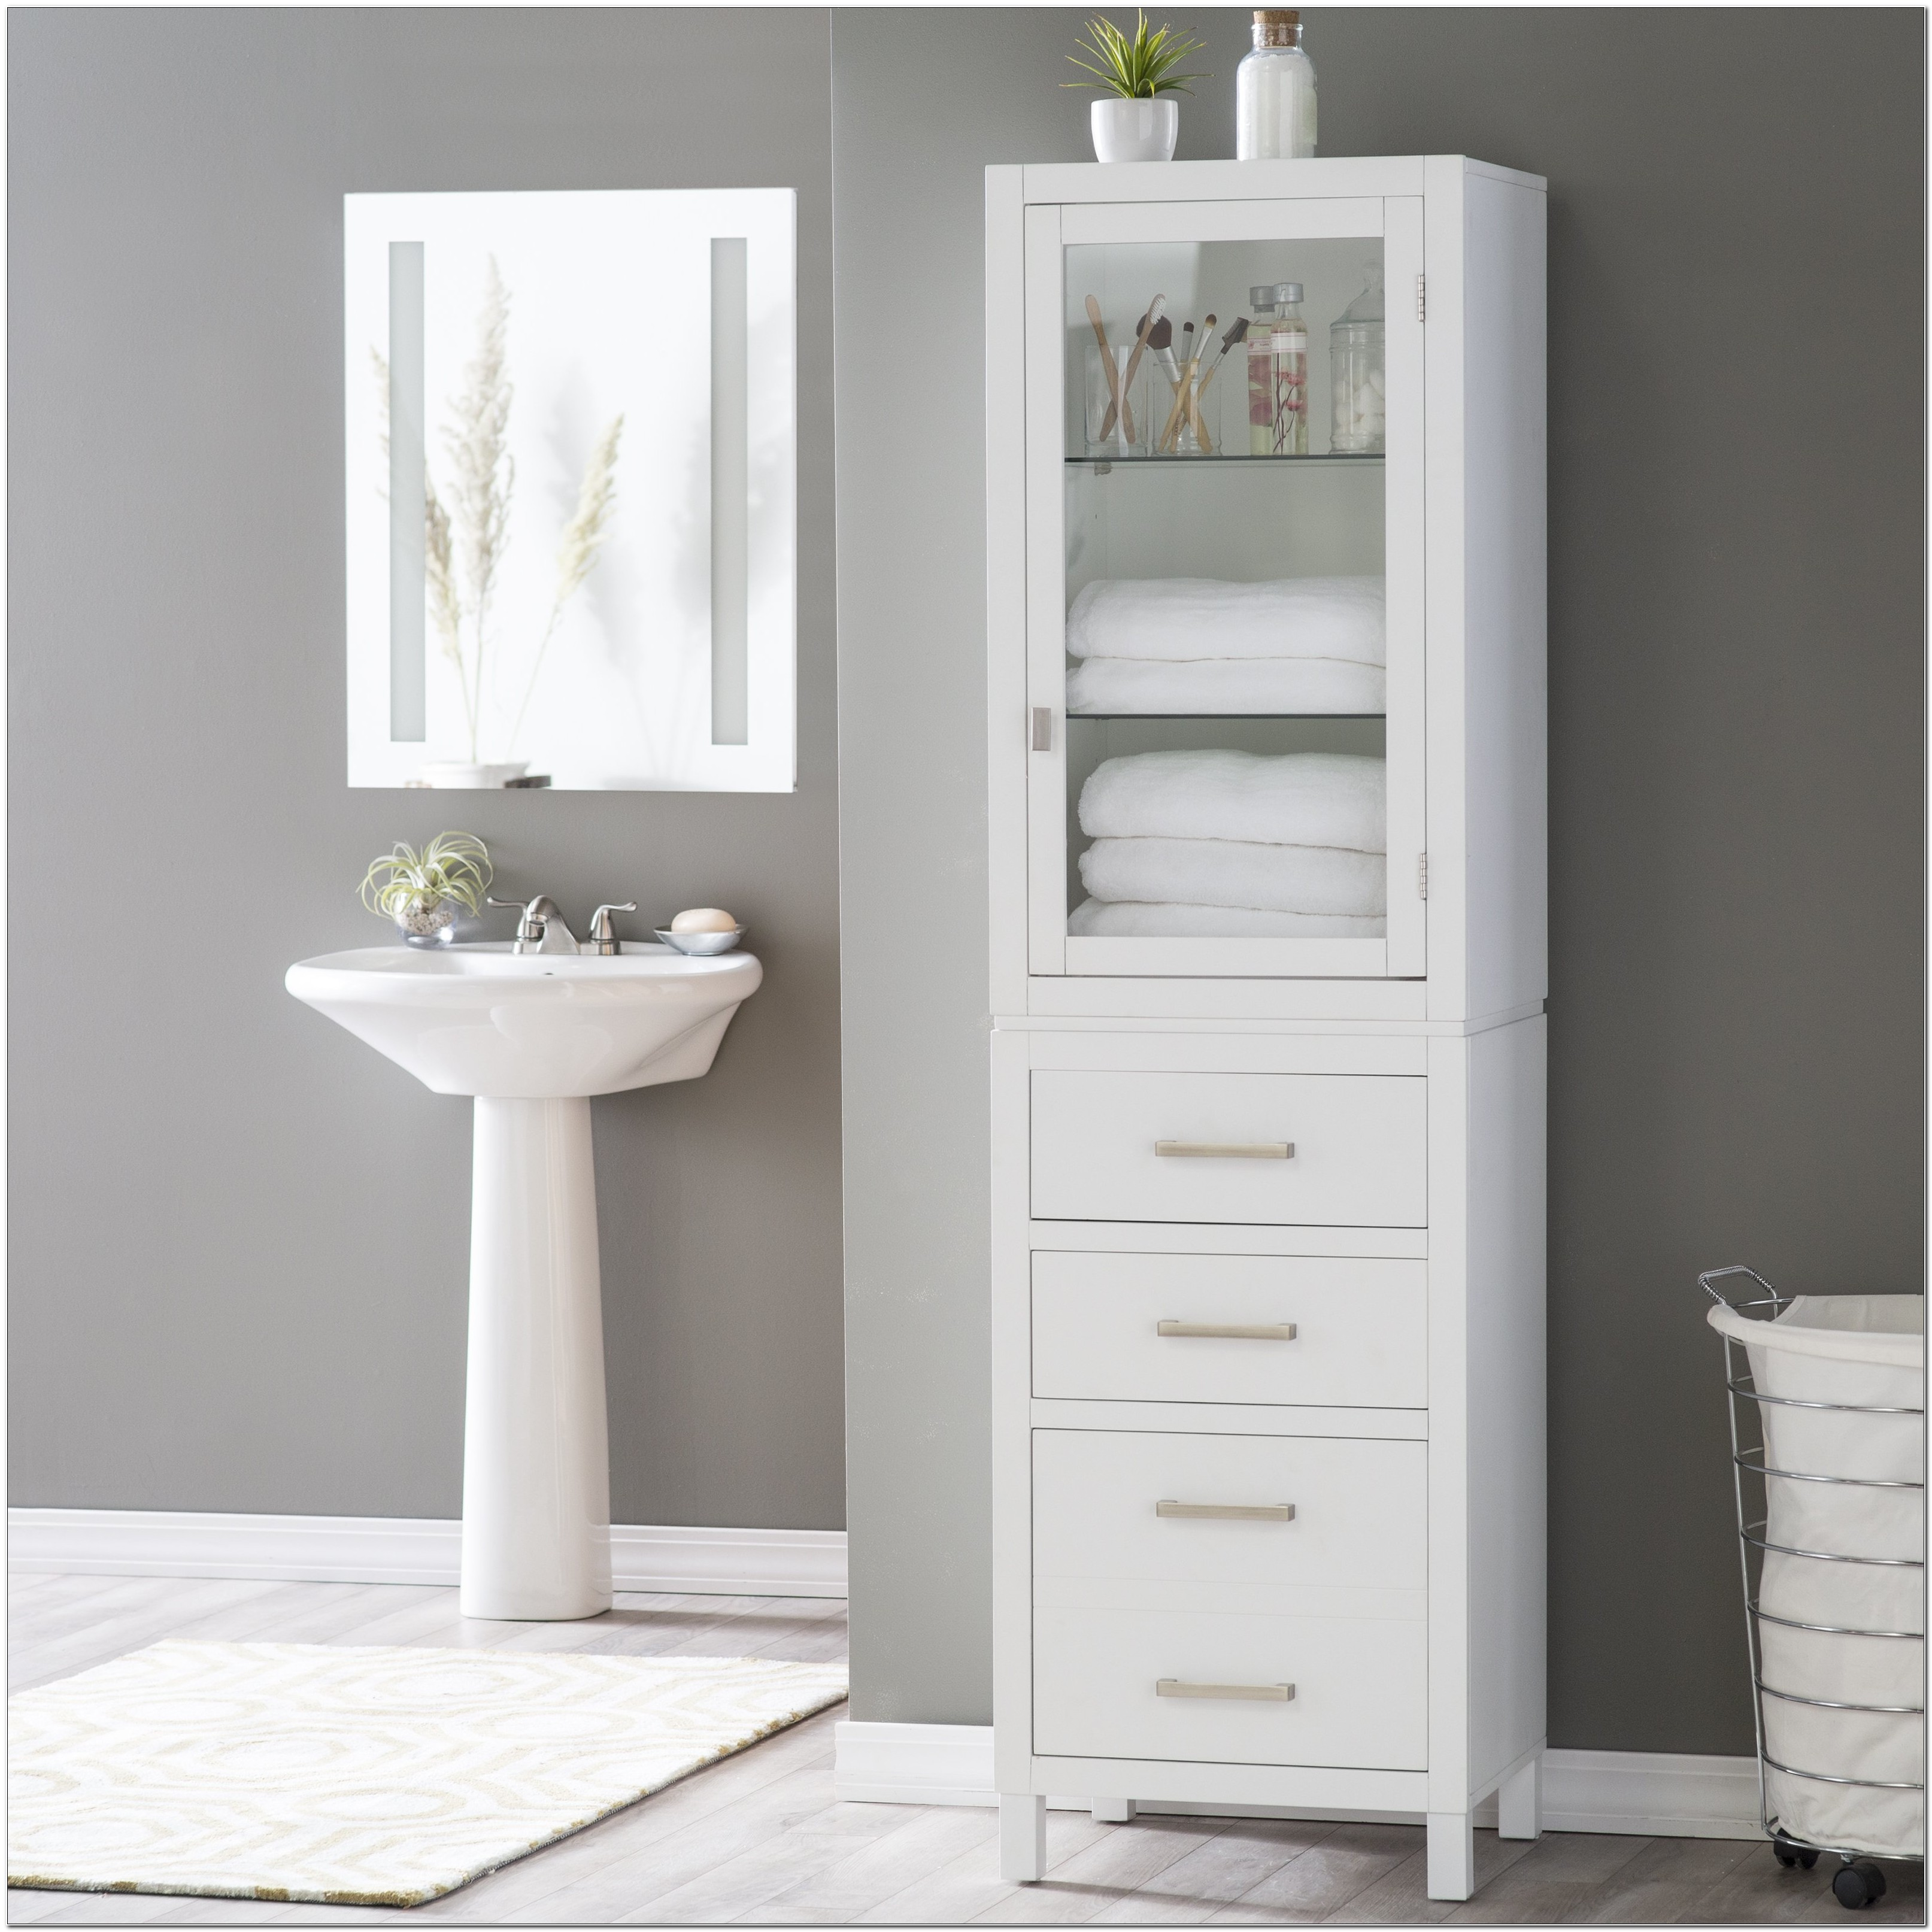 Linen Cabinets For Bathroom Canada